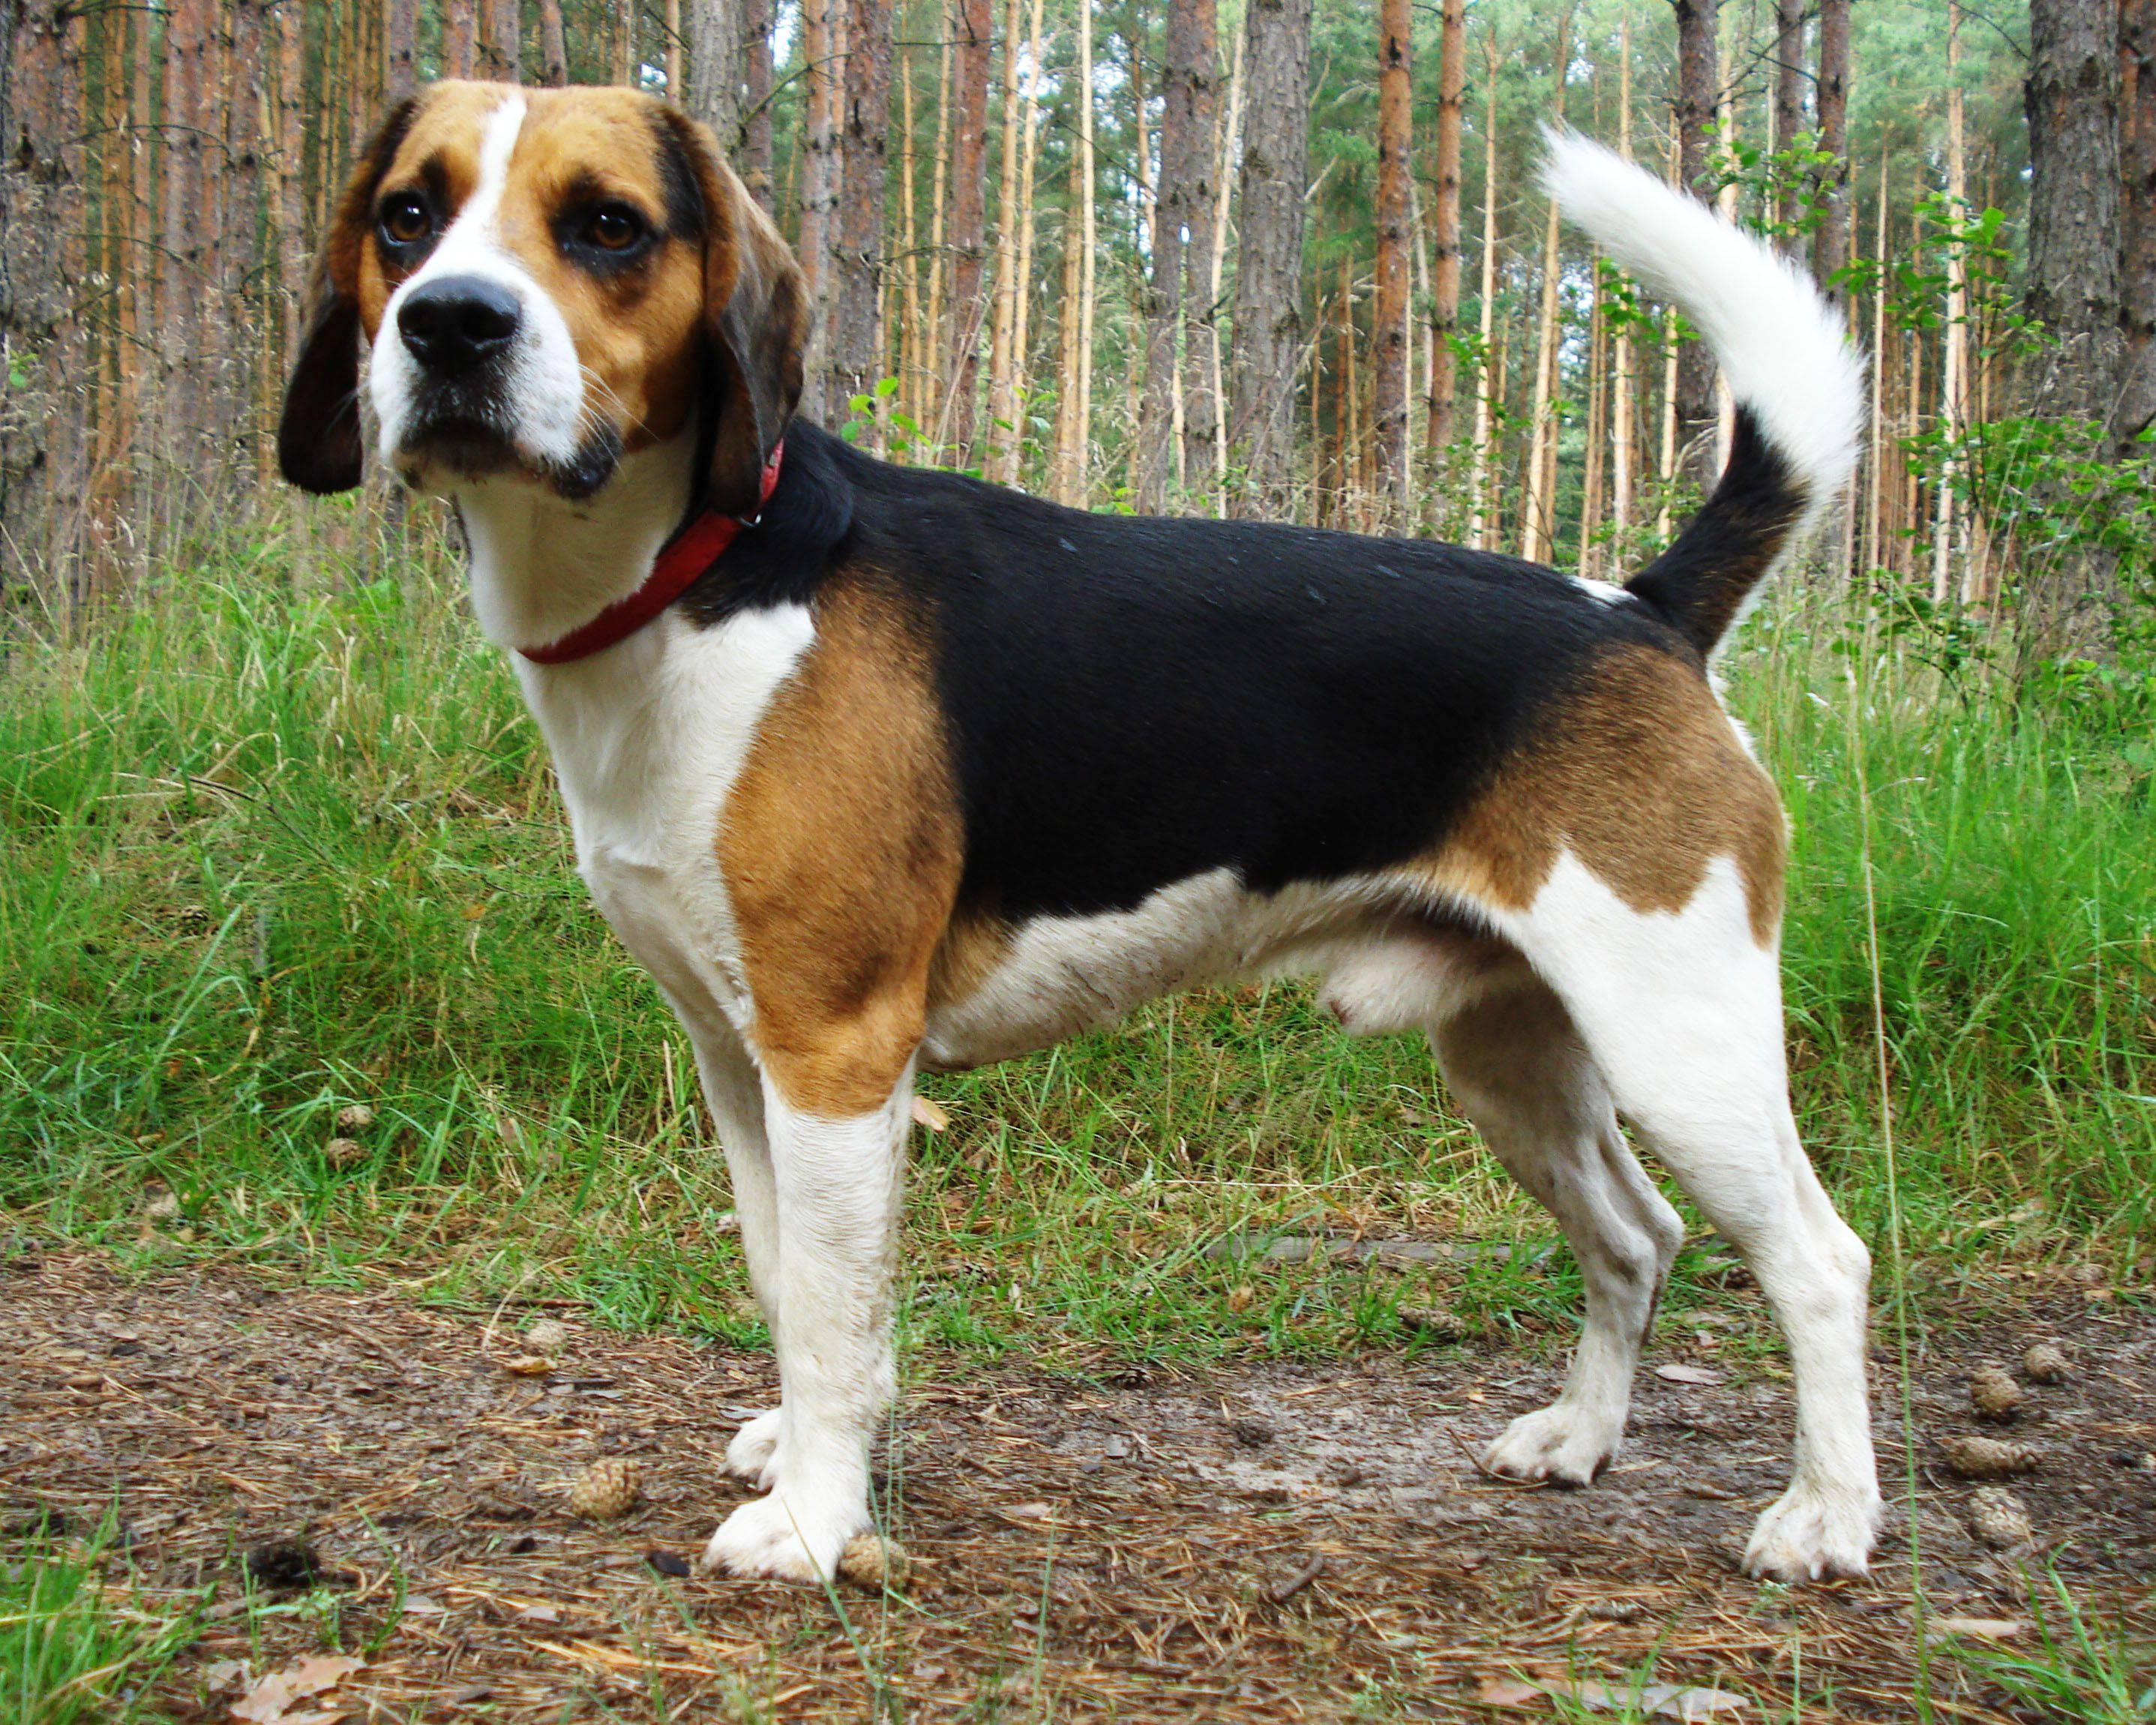 The Beagle Harrier Is A Scenthound It Is A Breed Of Dog